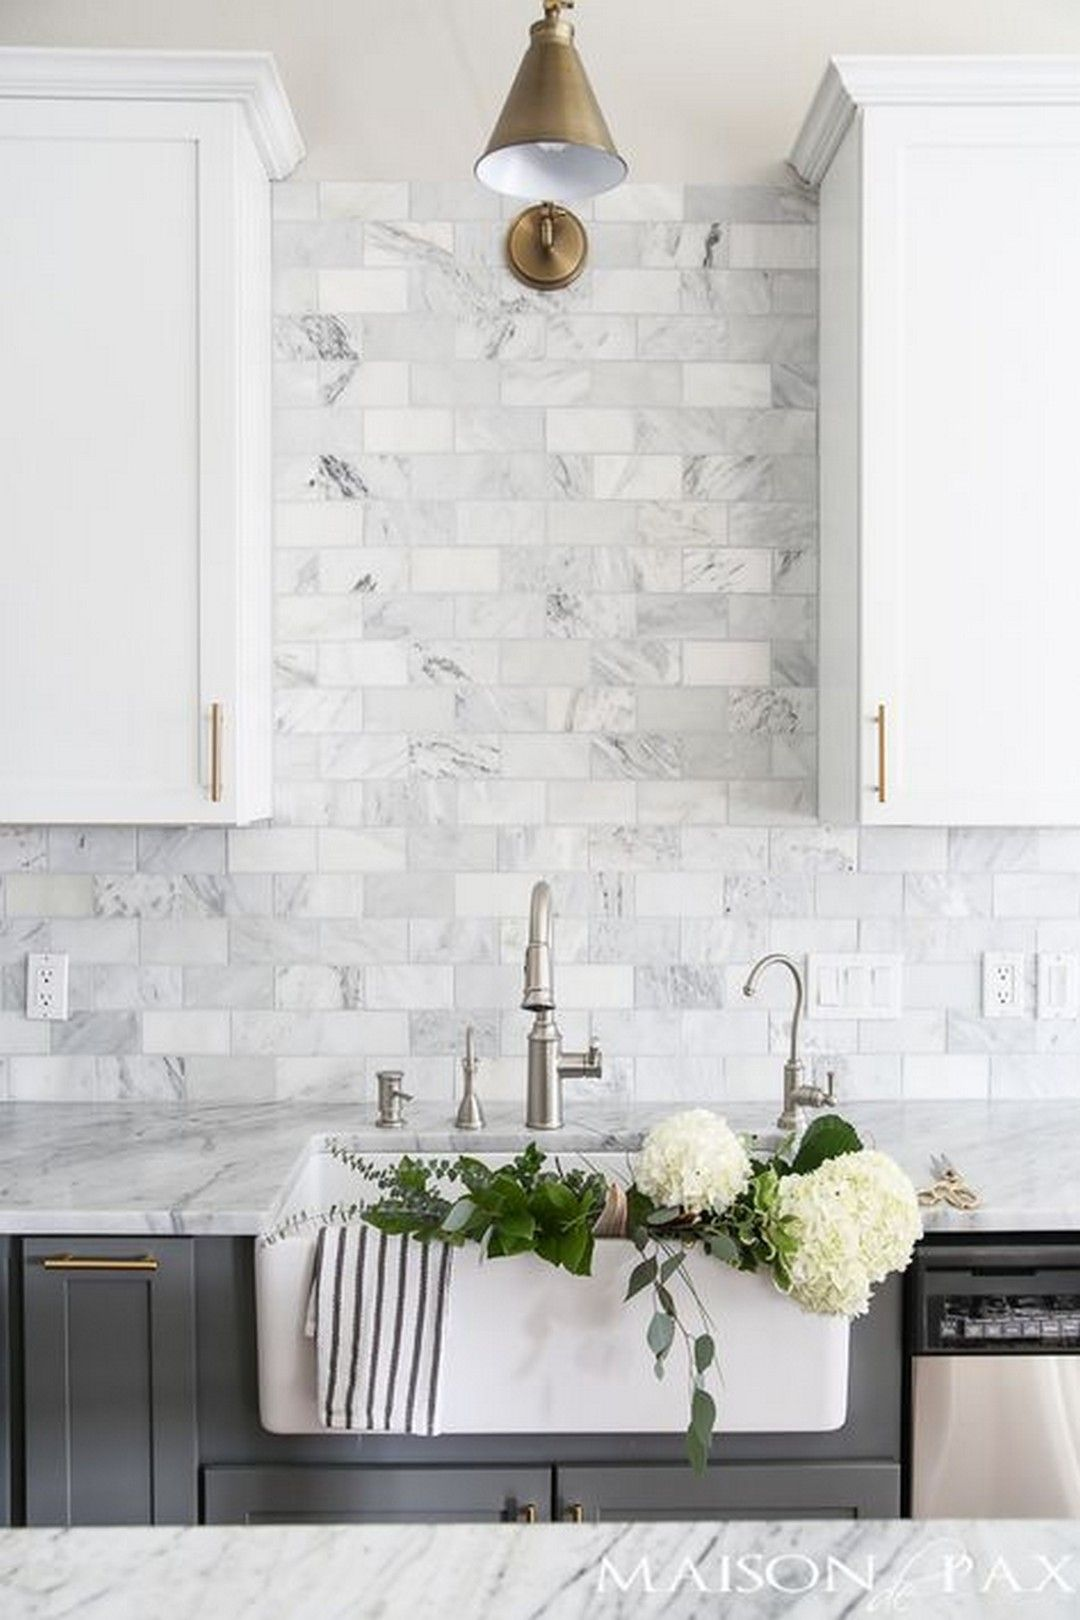 Kitchen Bathroom 99 Elegant Subway Tile Backsplash Ideas For Your Kitchen Or